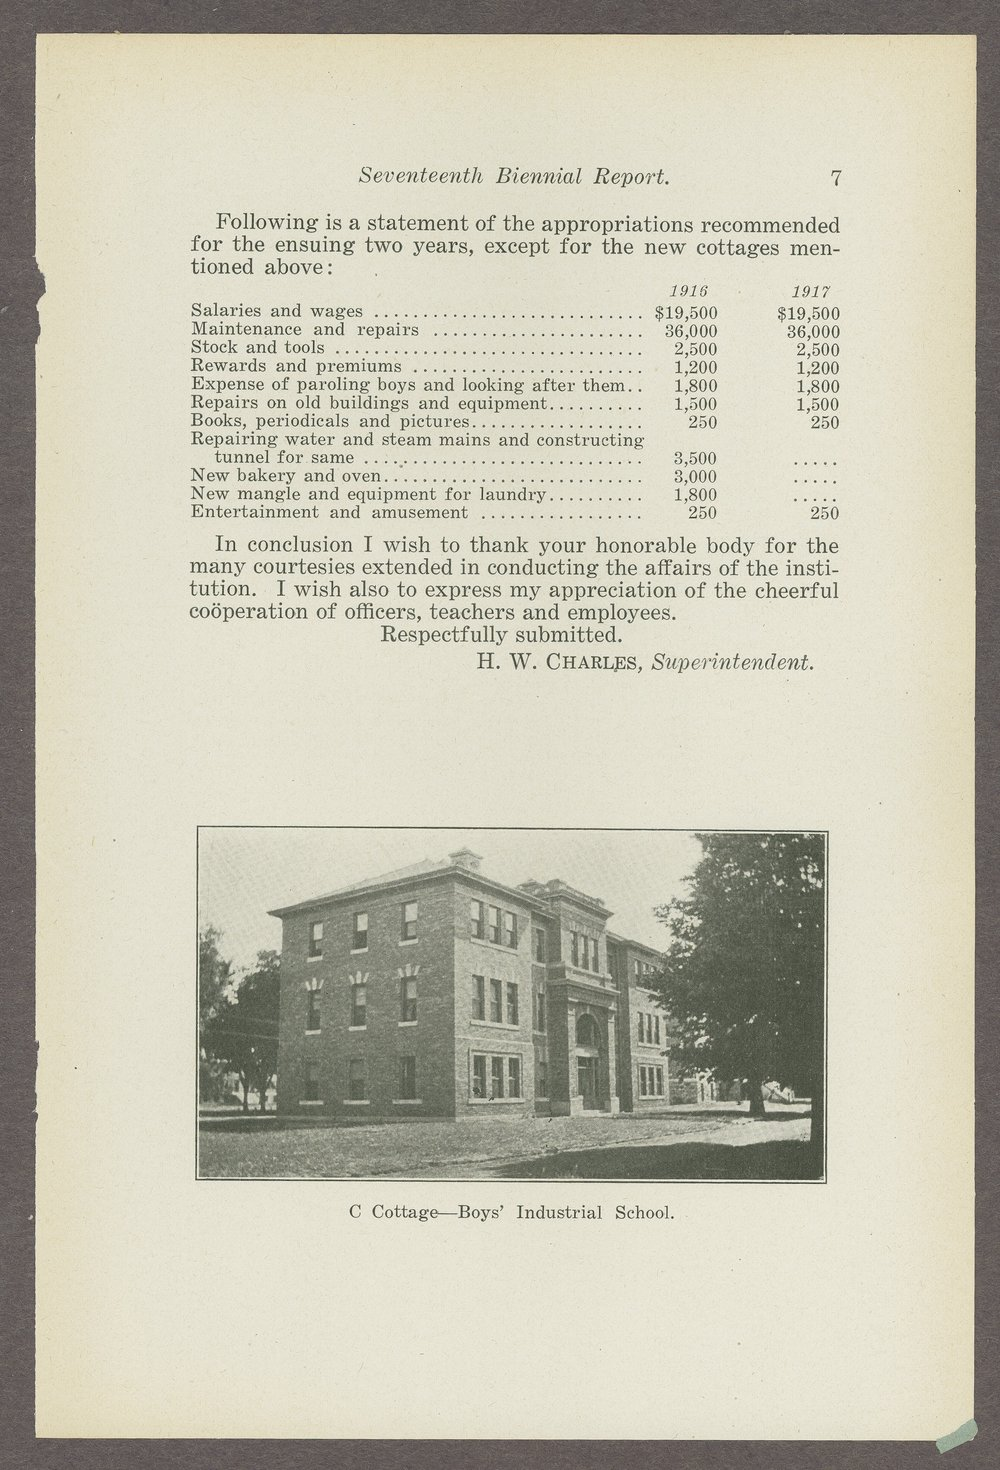 Biennial report of the Boys Industrial School, 1914 - 7